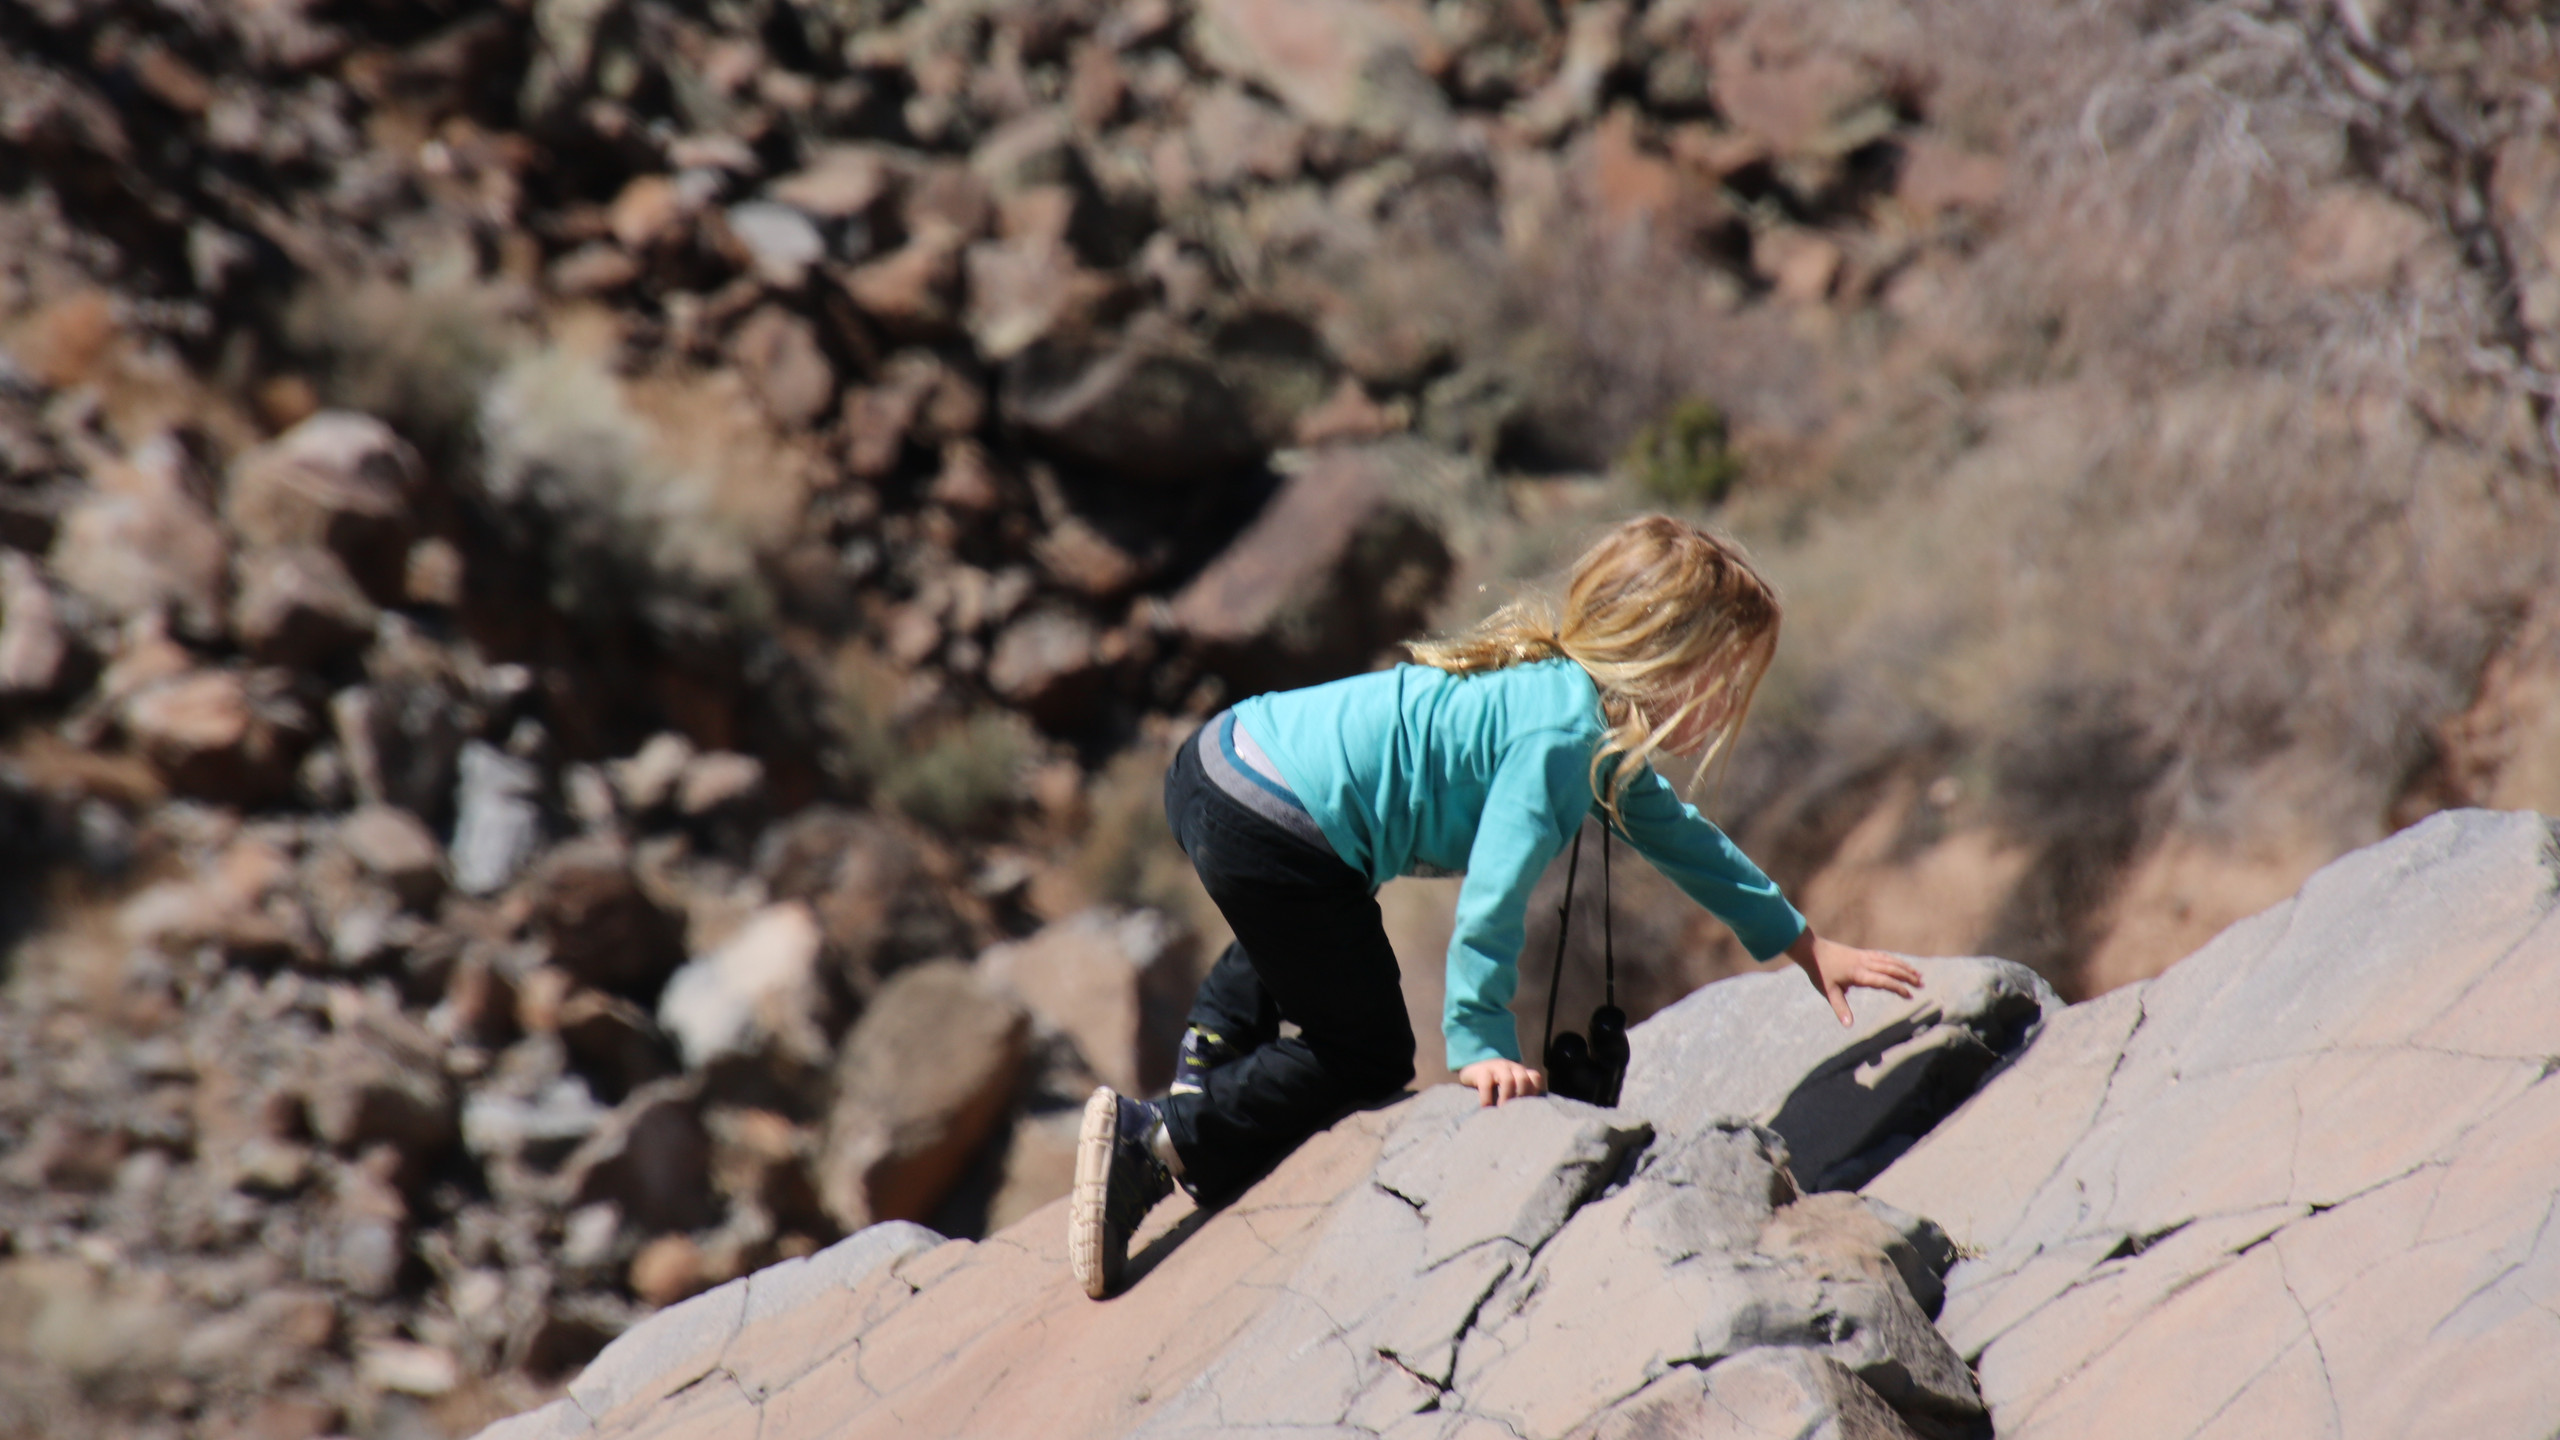 Little blonde boy in teal shirt and black pants climbing a rock in Diablo Canyon